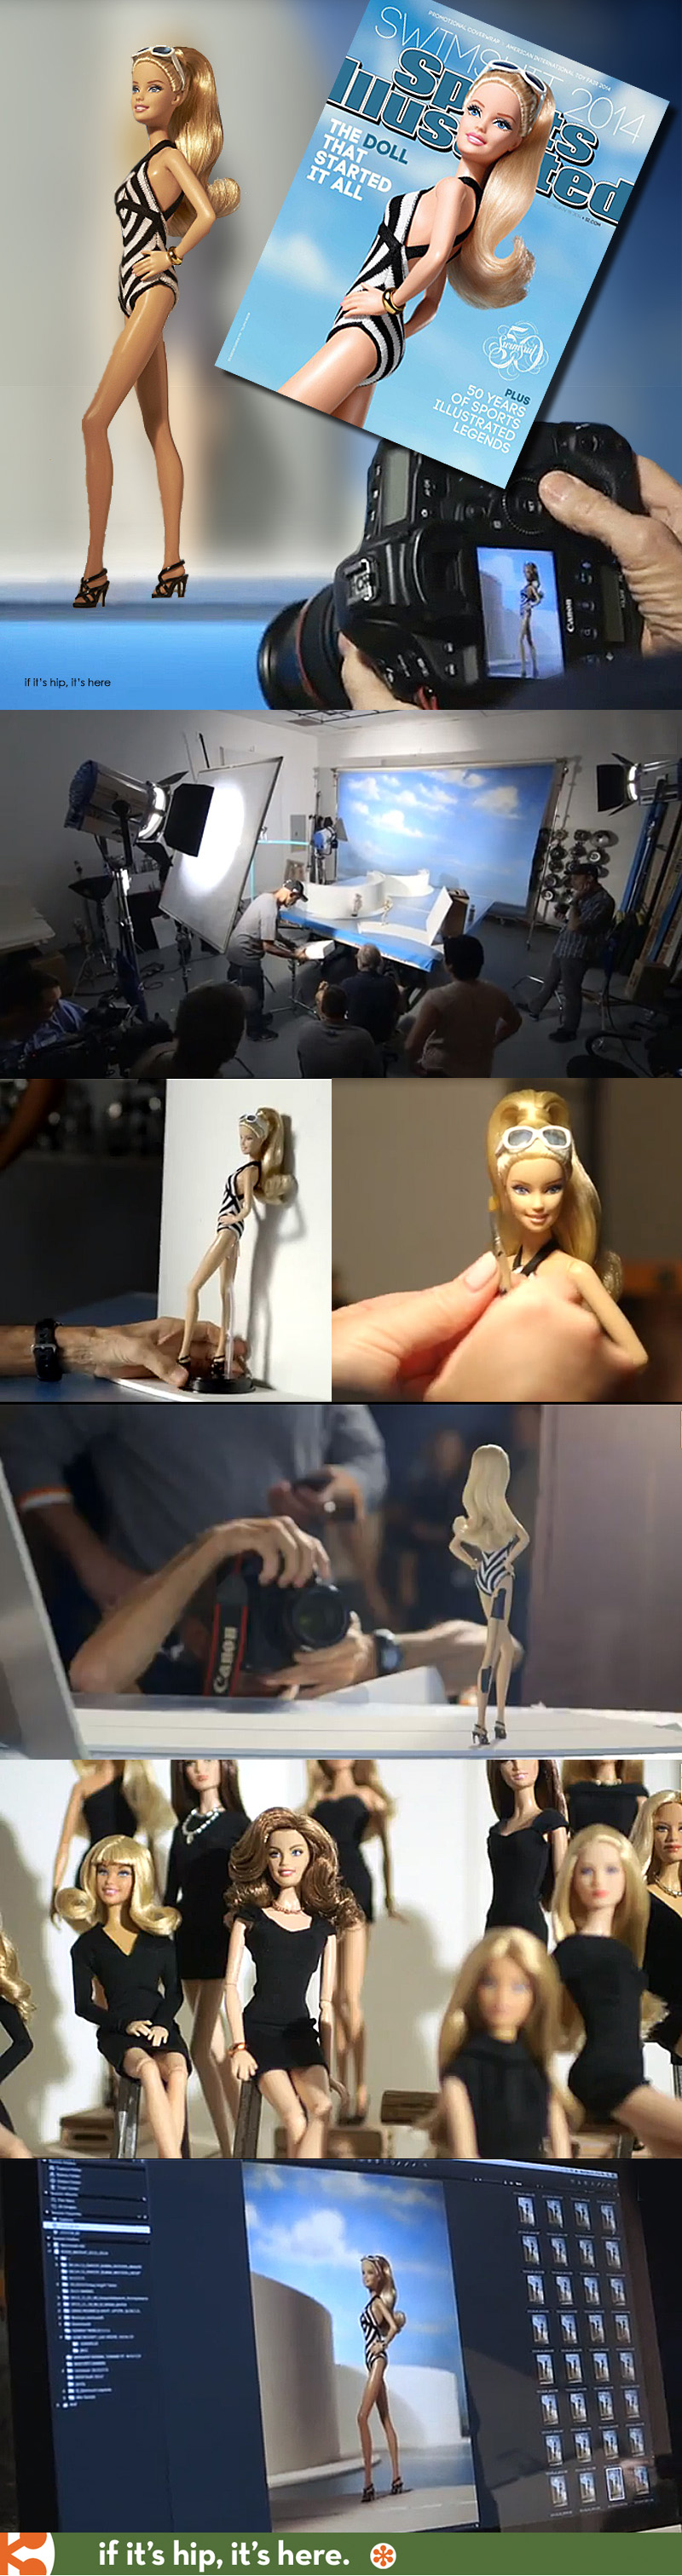 Behind The Scenes At Barbie's photoshoot for SI.